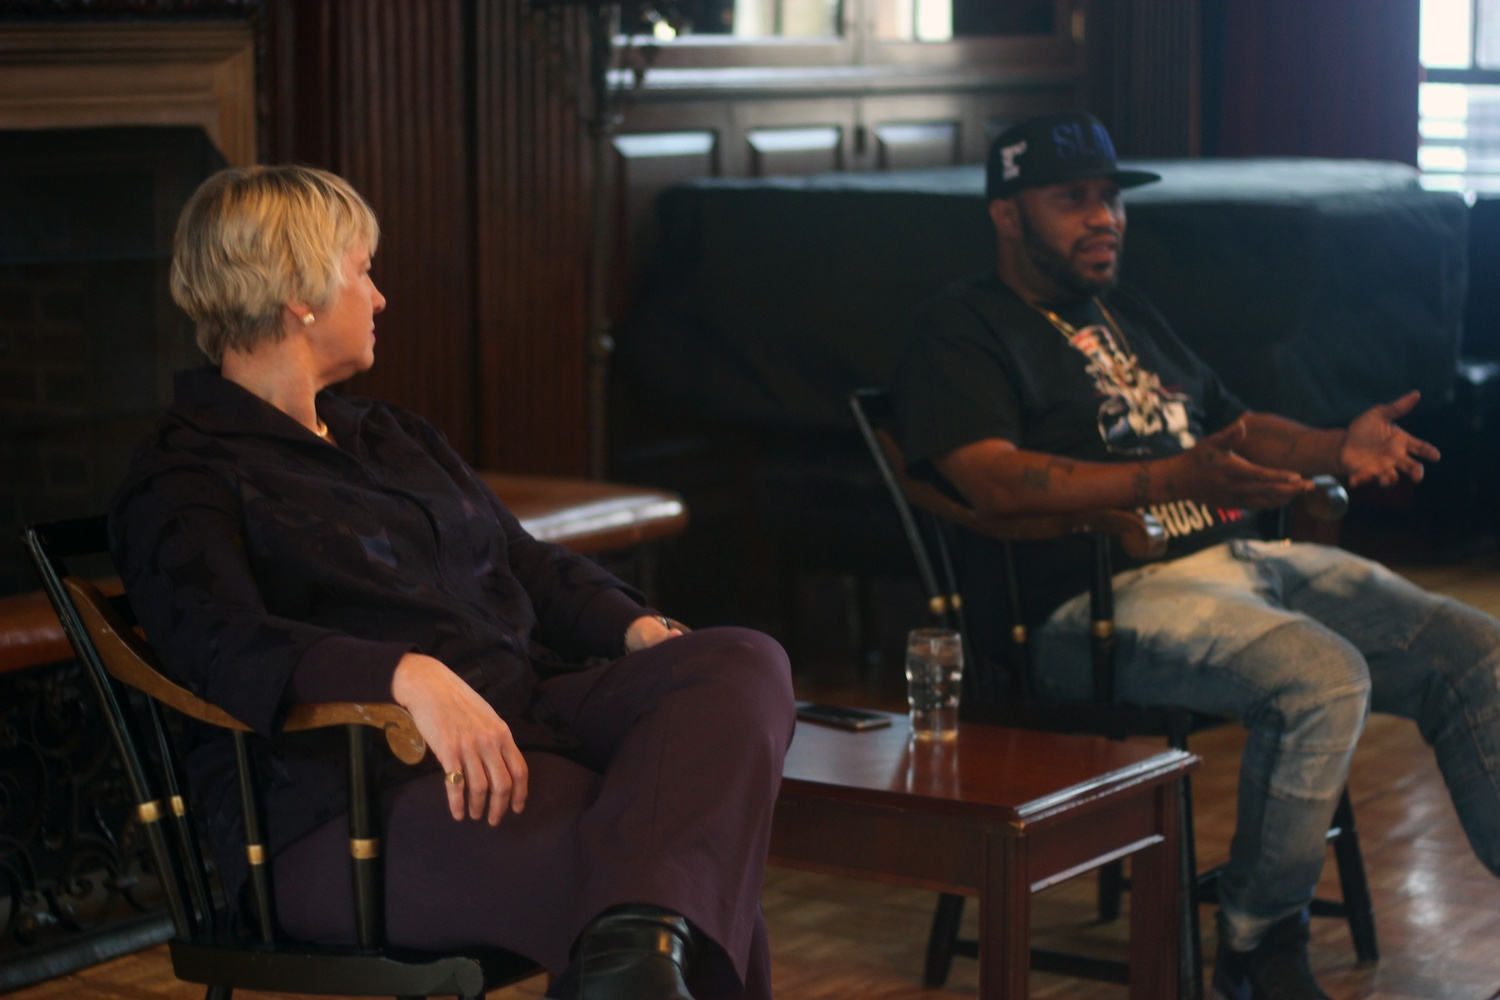 Seminal rapper Bun B, half of Houston duo UGK and solo artist, shares his experiences covering the 2016 elections for Vice alongside IOP Fellow and former Mayor of Houston Annise Parker.